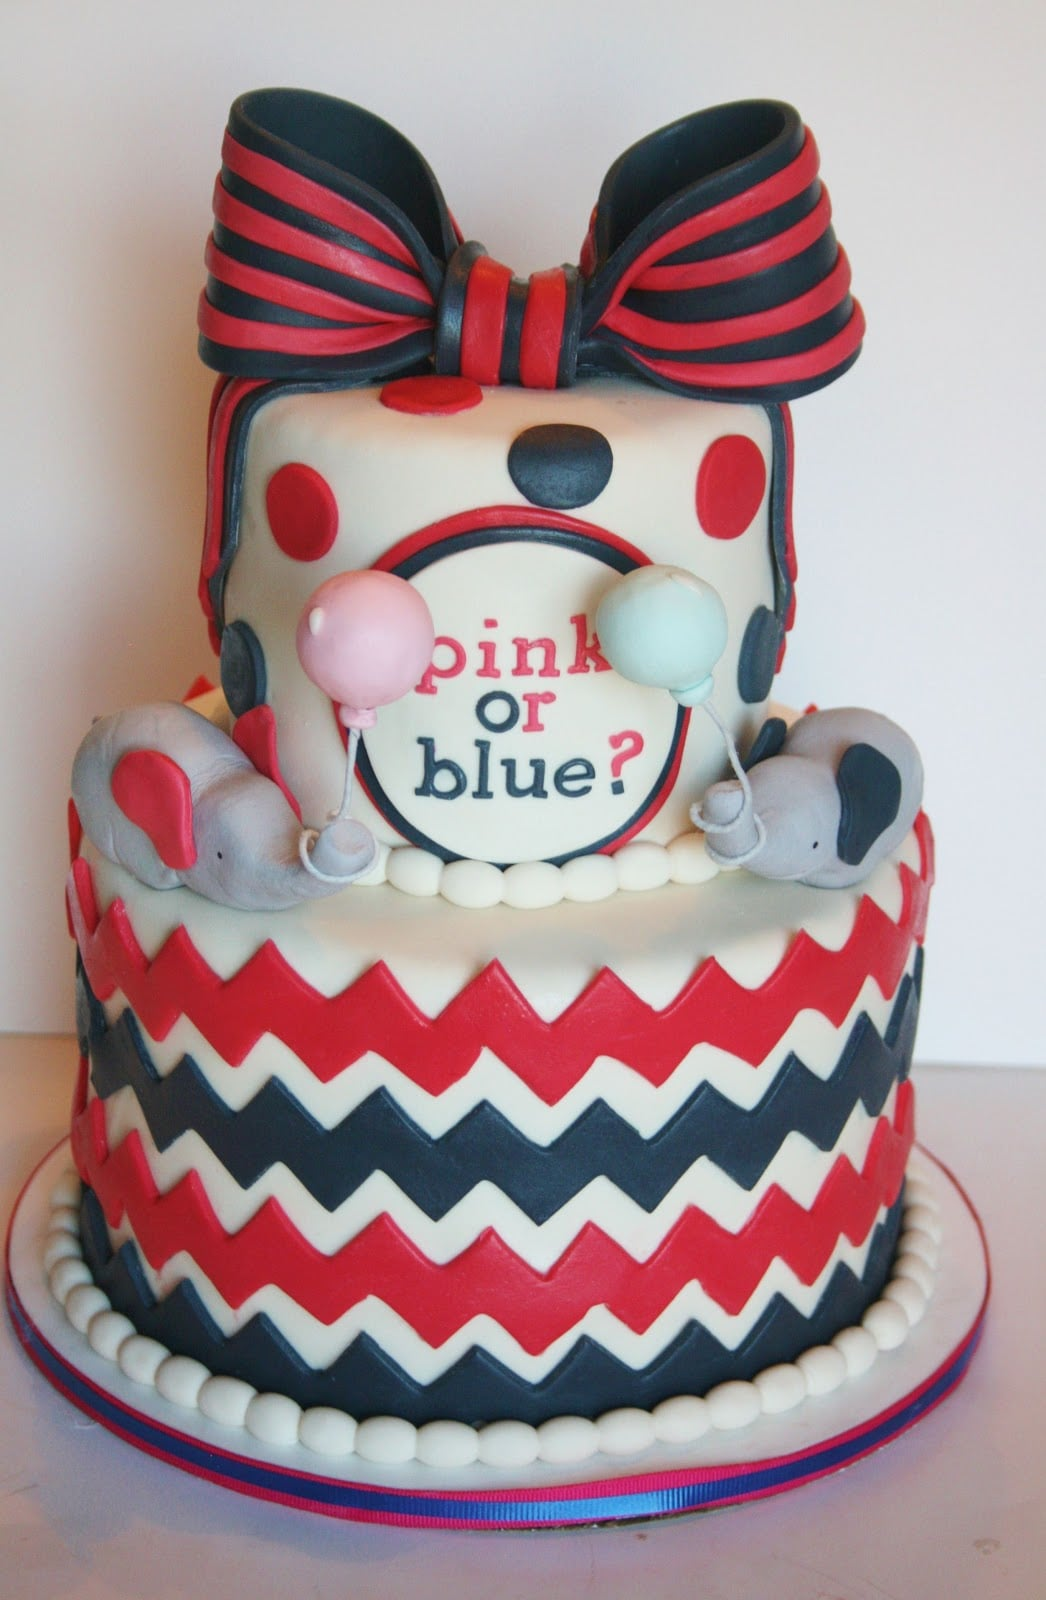 Pink, Blue, Navy, and Red